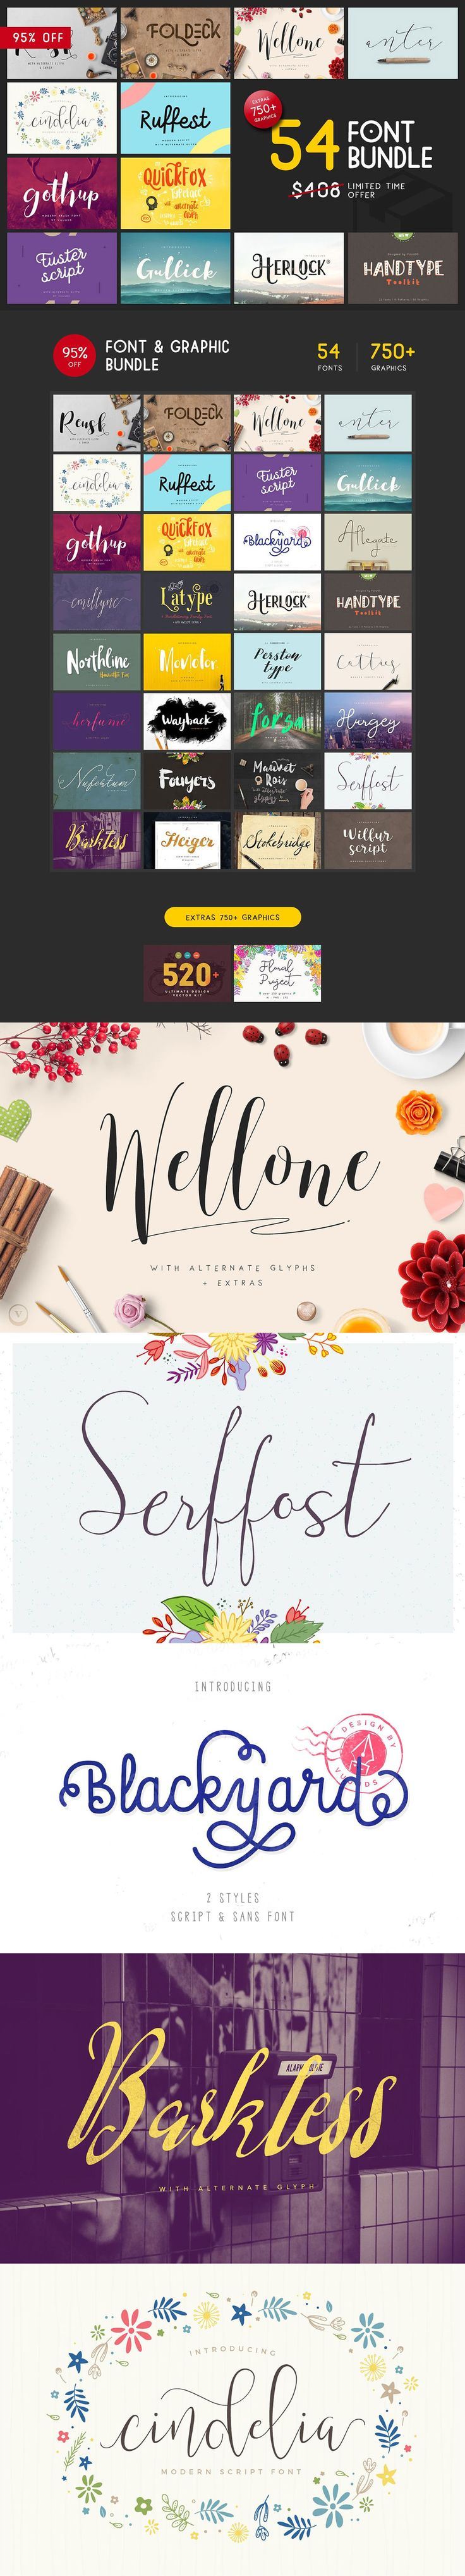 INTRODUCING #FONT & GRAPHIC BUNDLE  Hello! All beautiful fo carefully with ntion to details. These fonts are perfect for #logos, #blog, posters, #apparel, #wedding invitations, beer labels and many others.